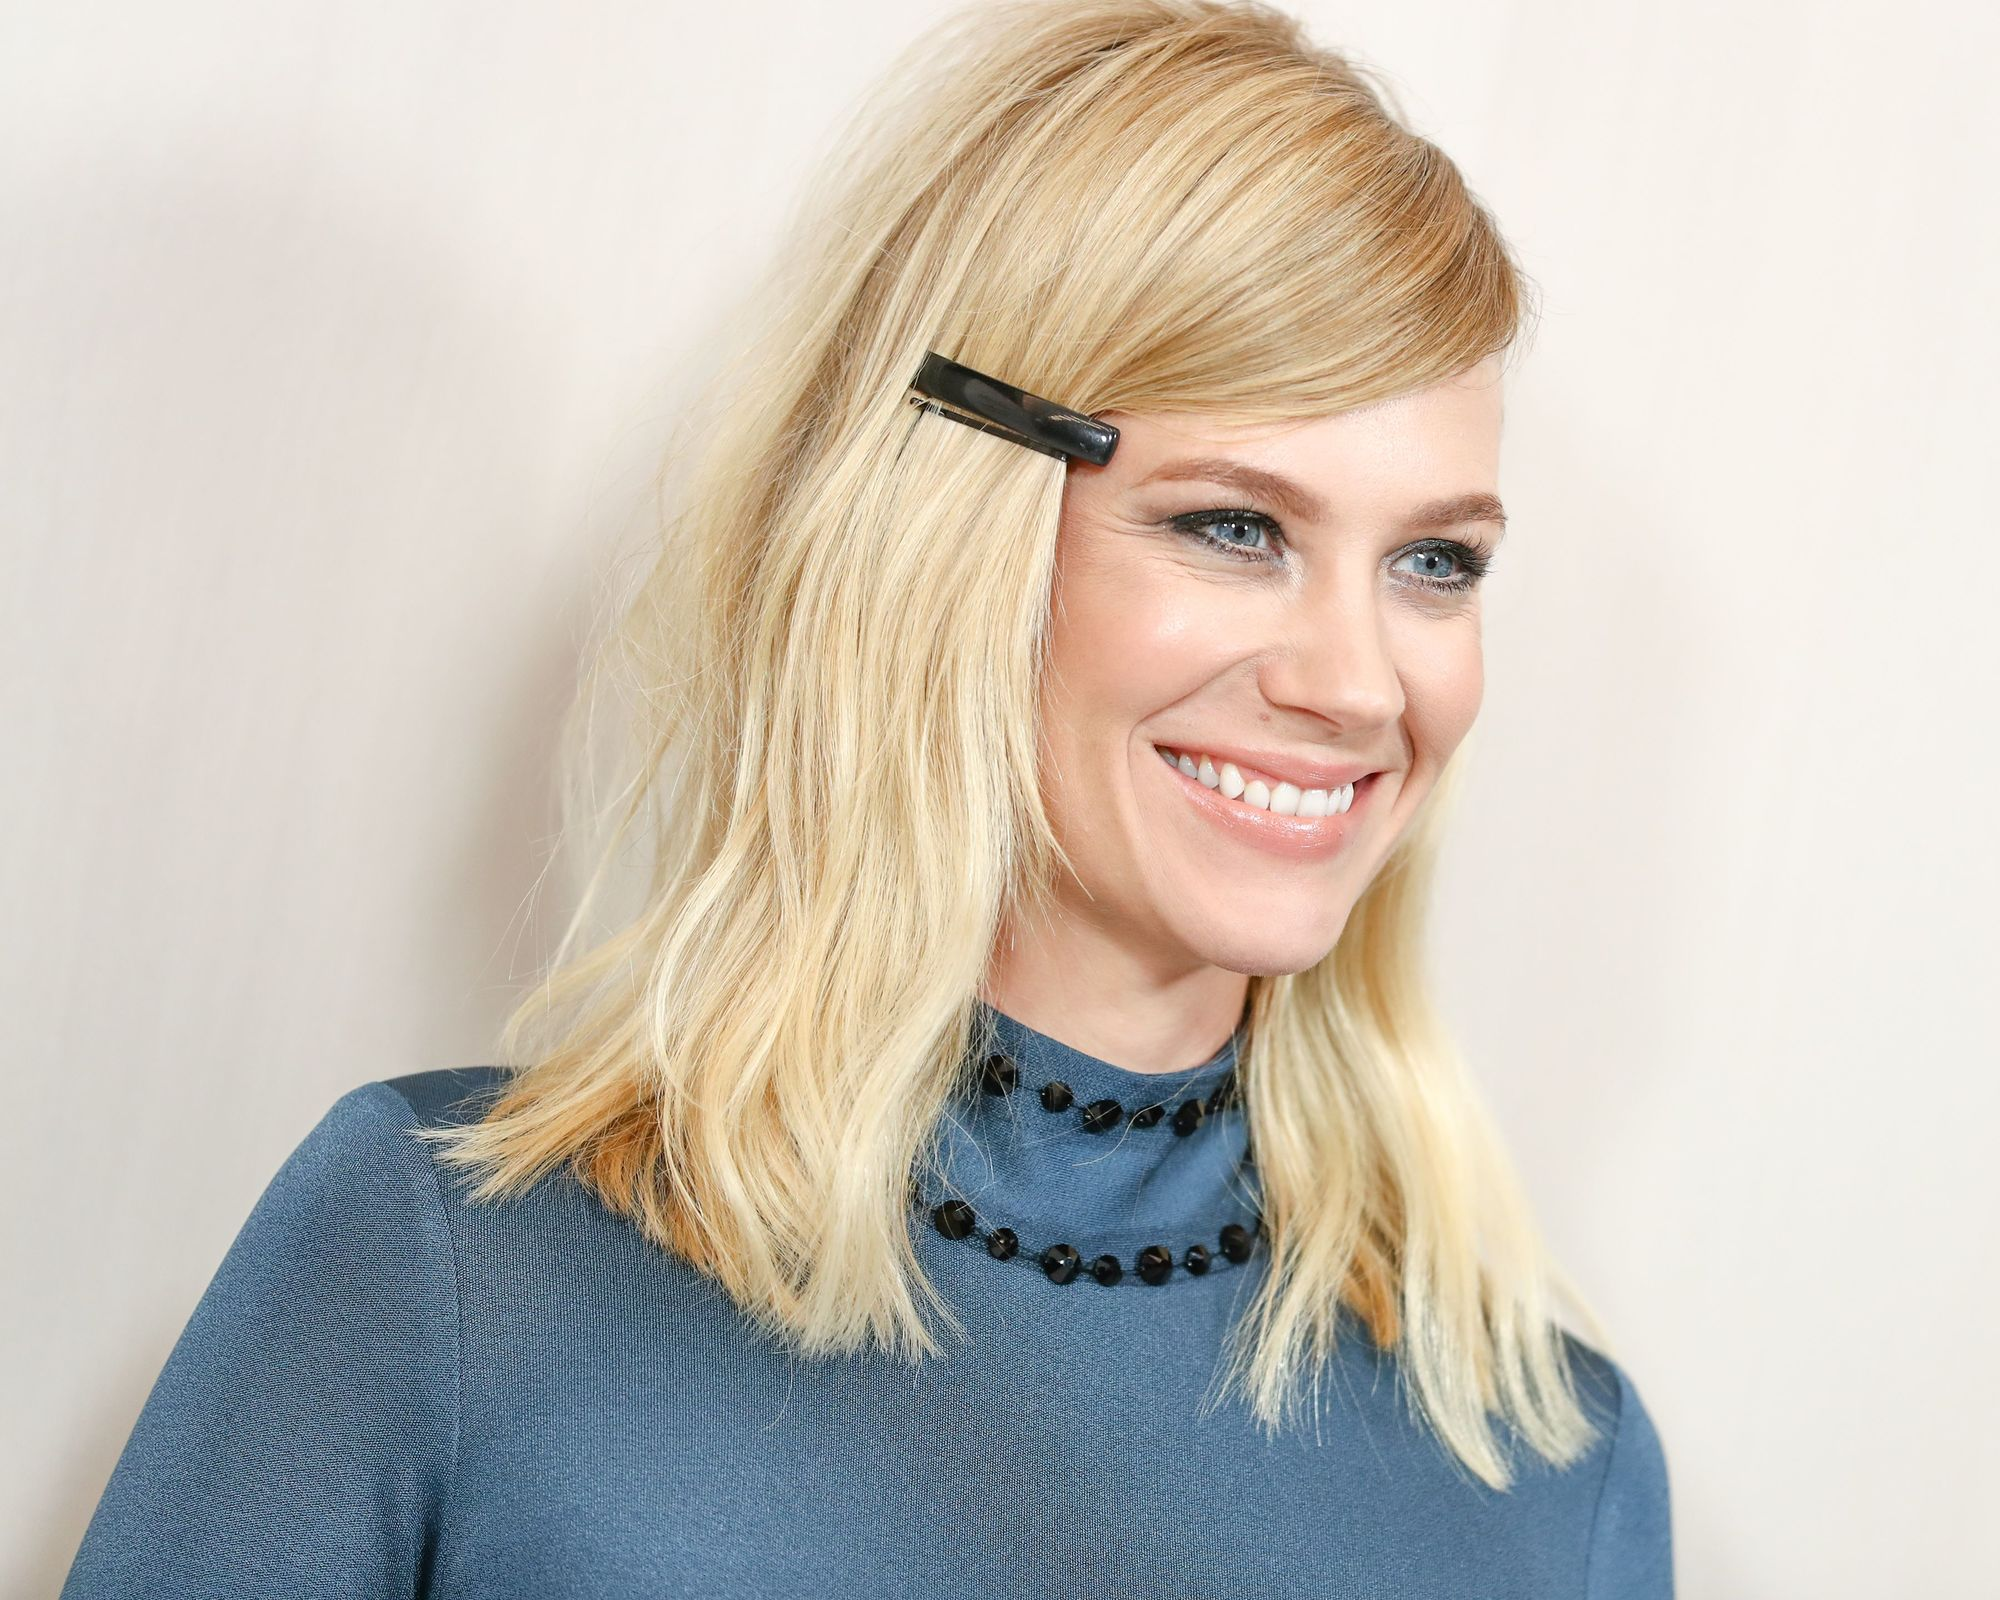 90s hairstyles: image of January Jones with blonde wavy hair, with a hair clips and blue top